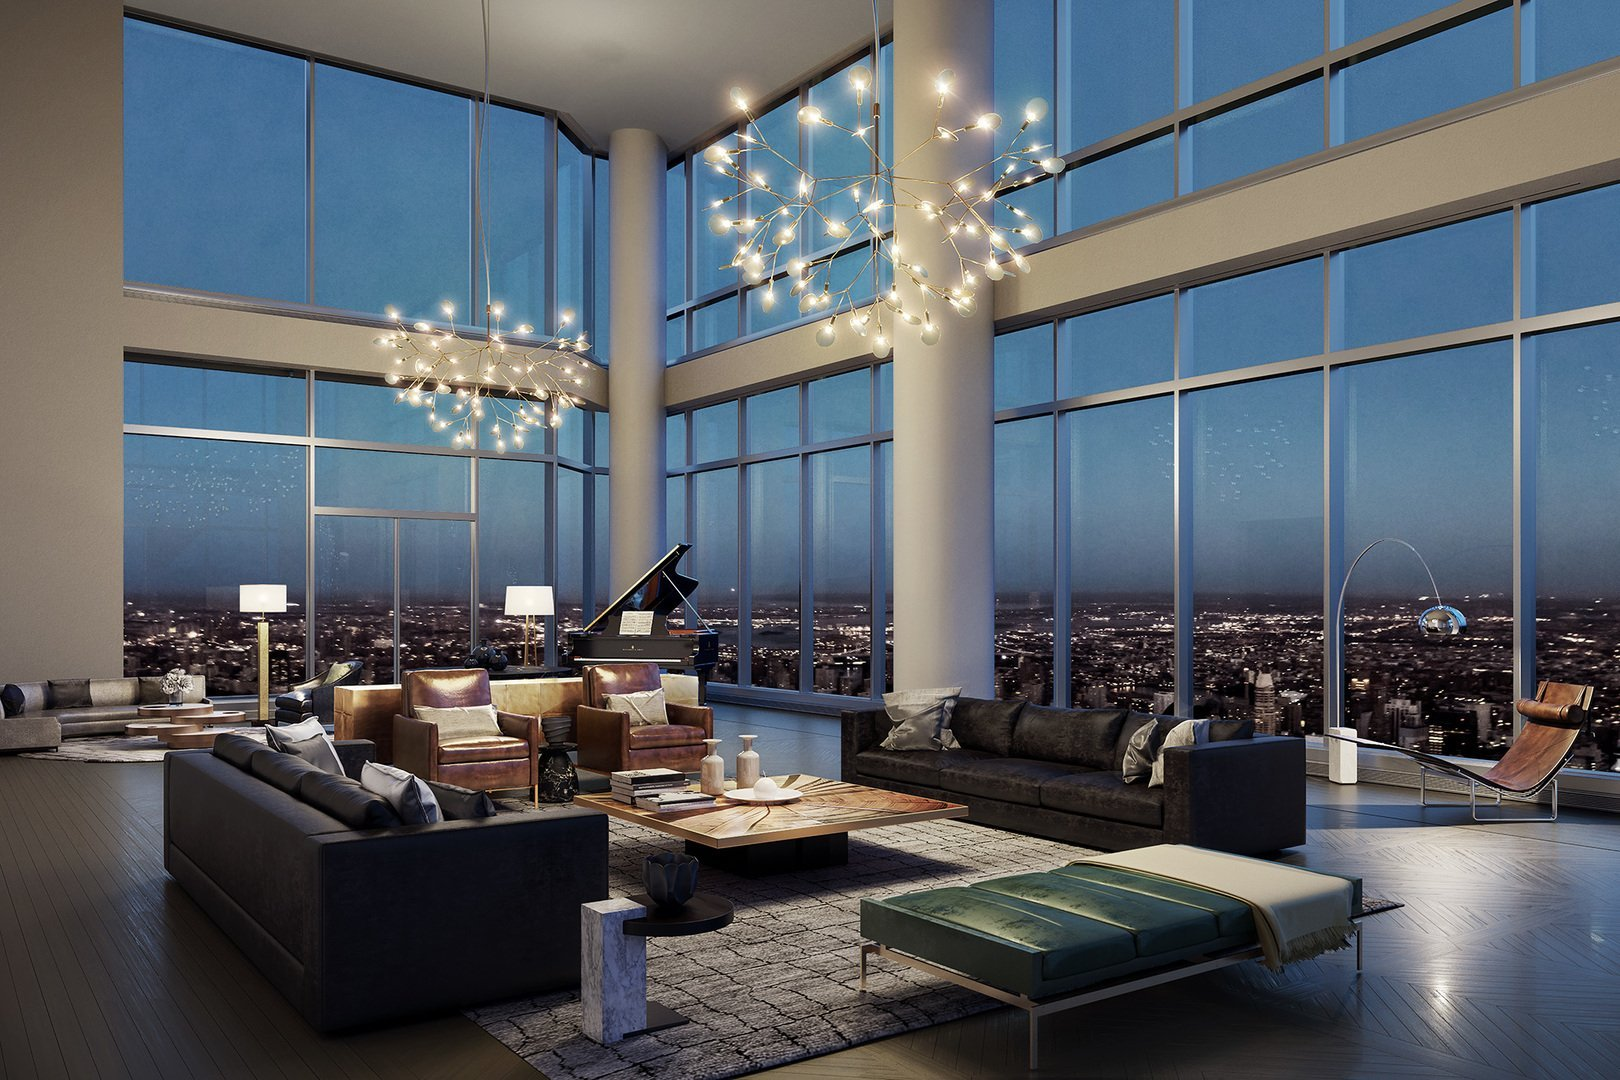 Residencia multimillonaria en Central Park Tower